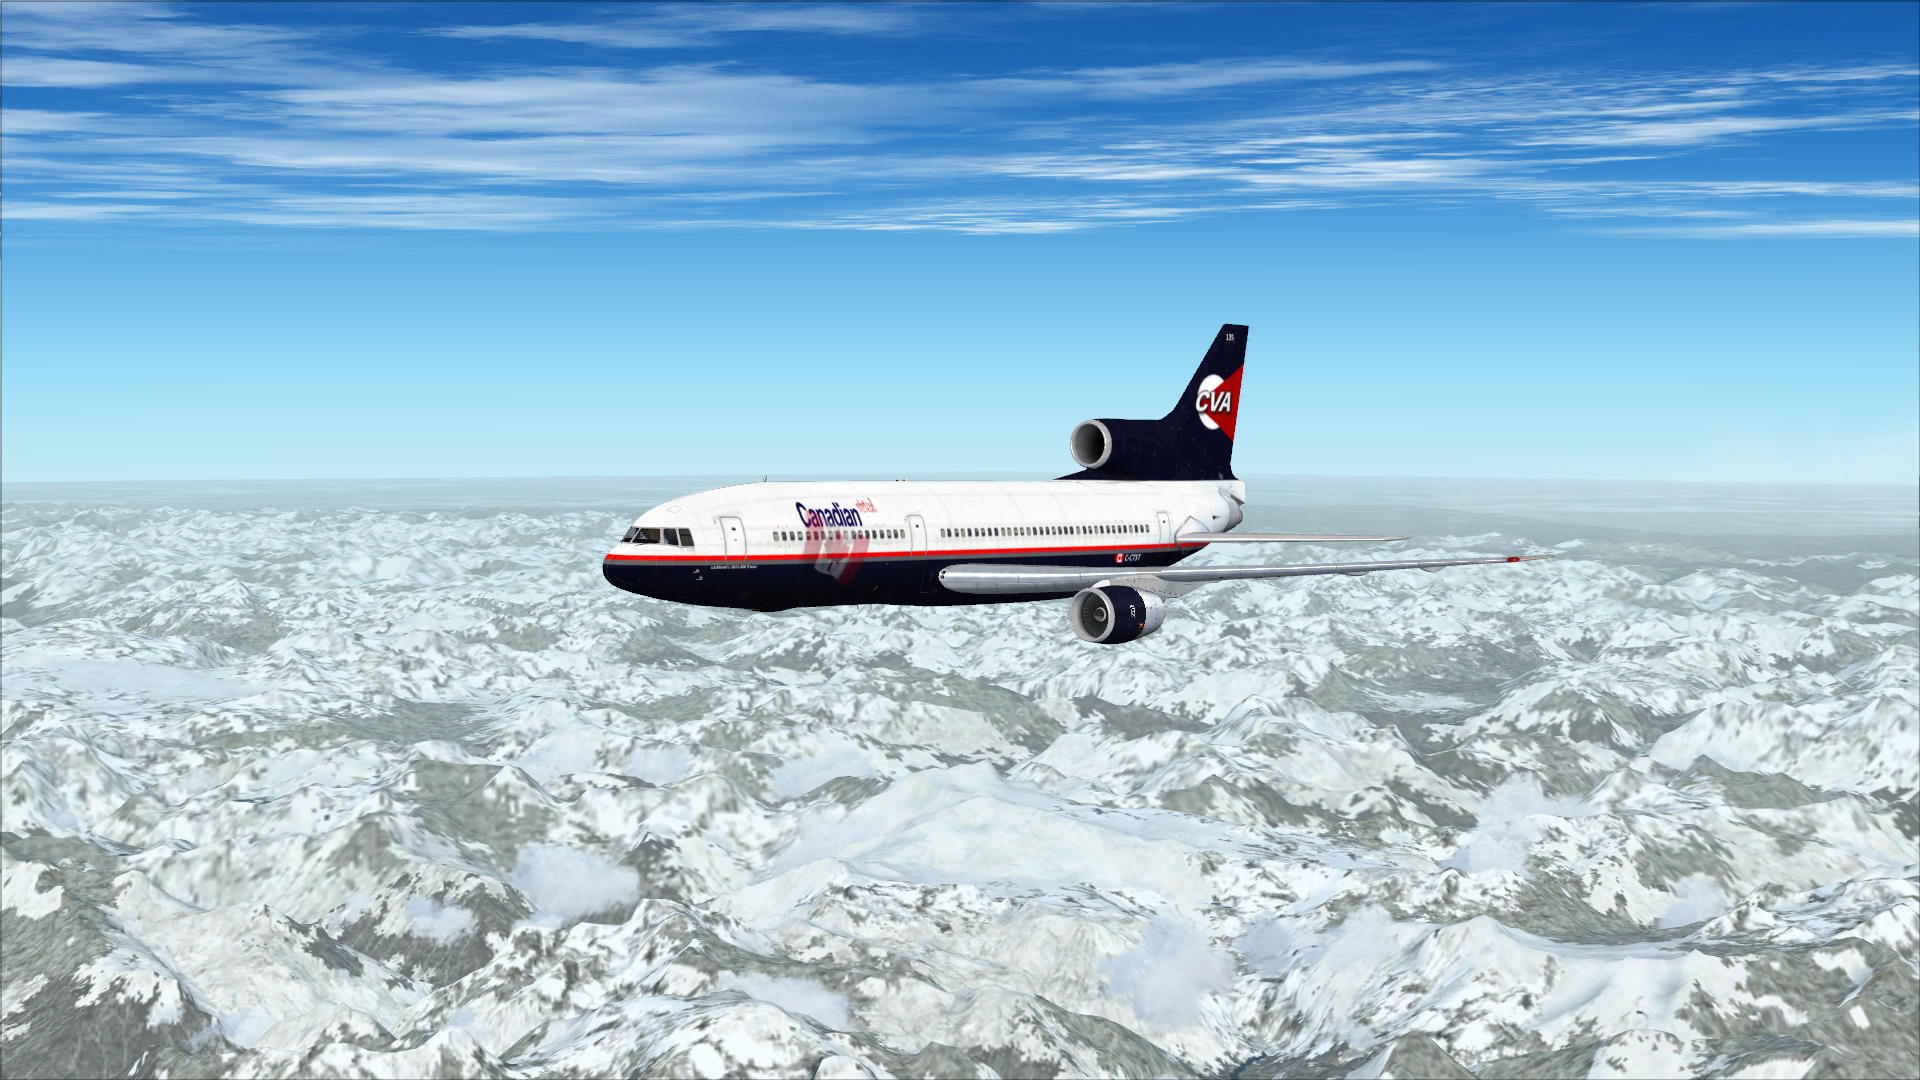 Enroute to CYYC from CYVR in JF L-1011 Tristar Pro.